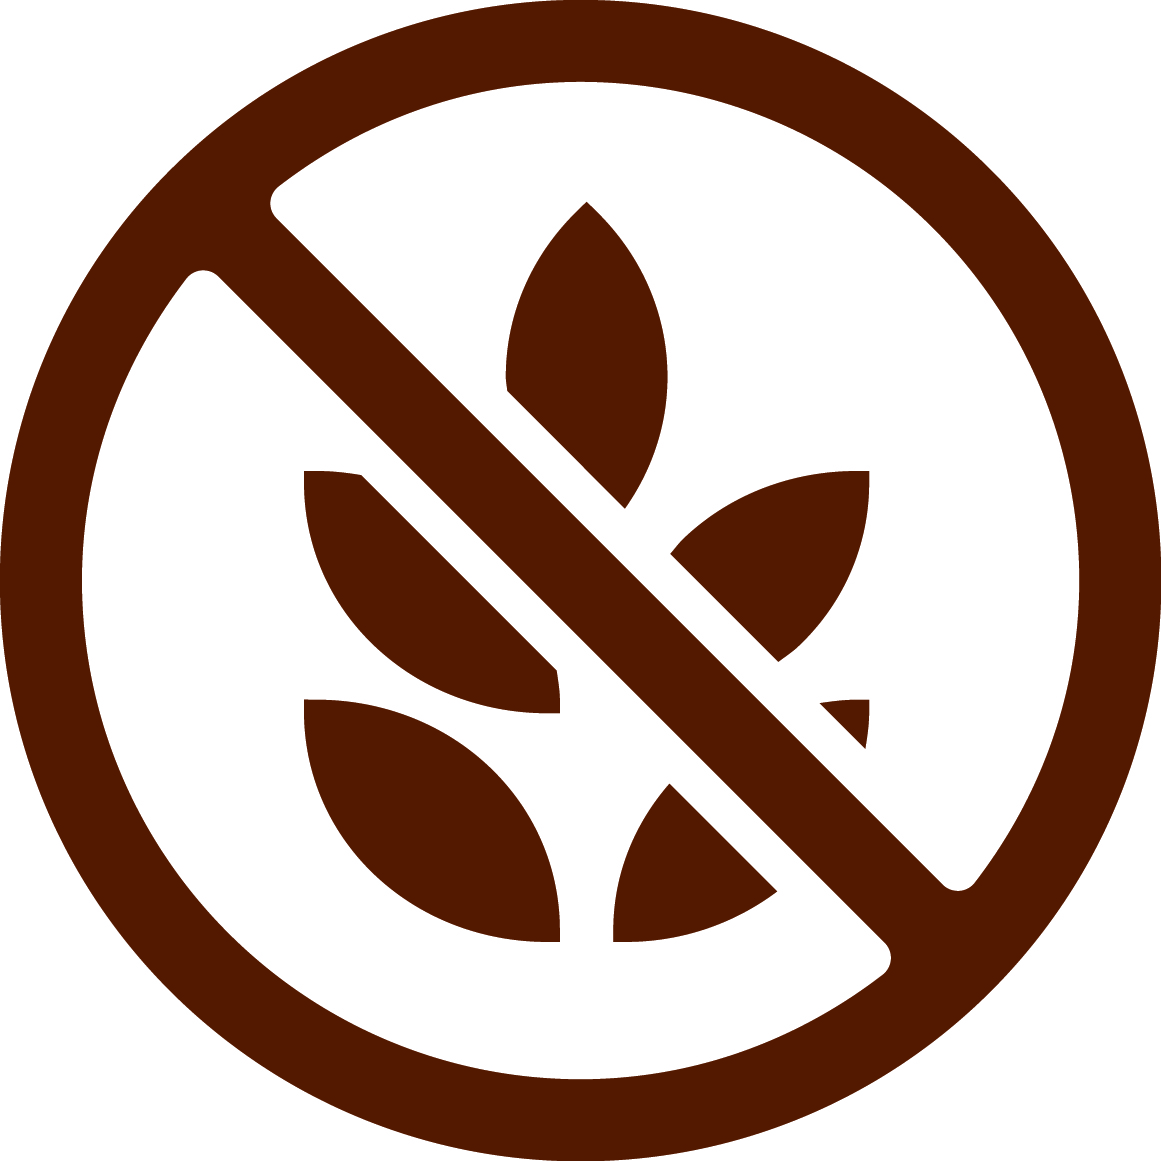 Non-Gluten Ingredient icon image